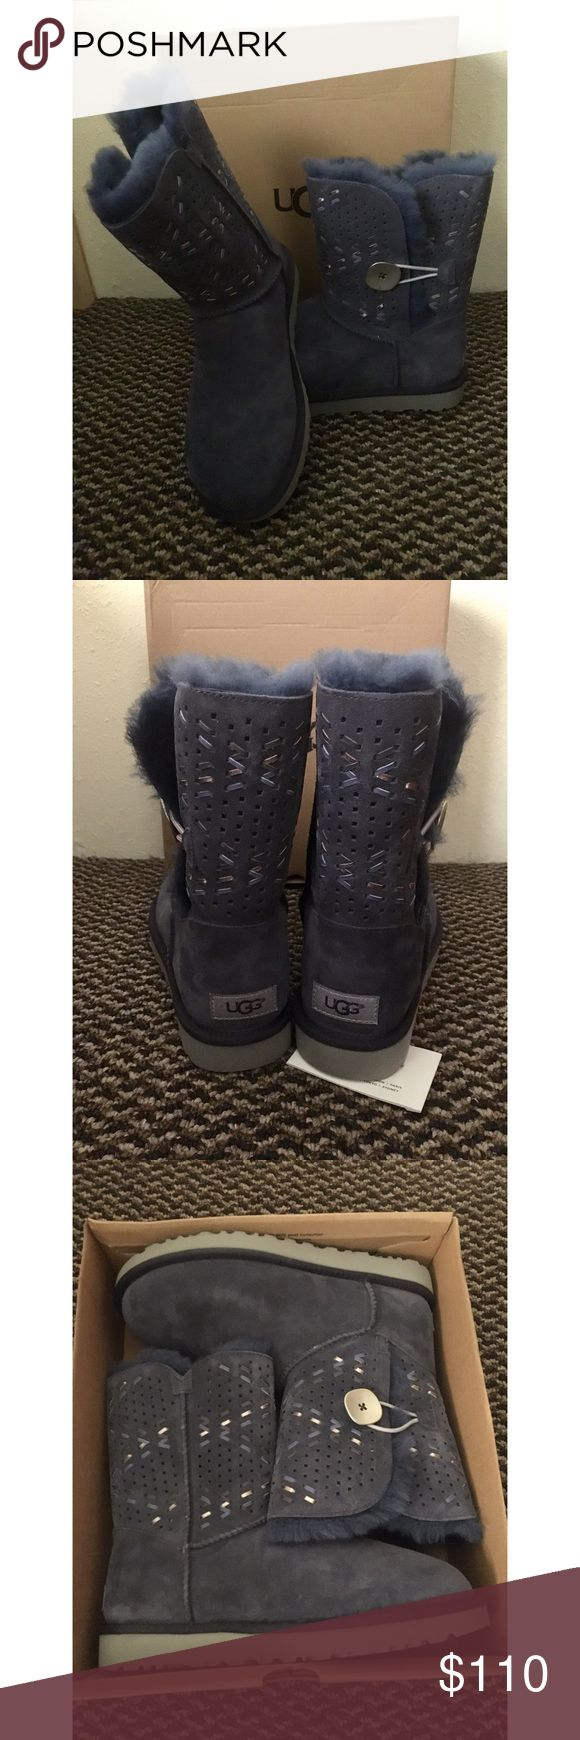 UGG Bailey Button NWT and will ship with box. Size 8 in women's. Feel free to ask me any questions regarding the item (not the price) in my comment section below ☺️ NO TRADES! UGG Shoes Ankle Boots & Booties